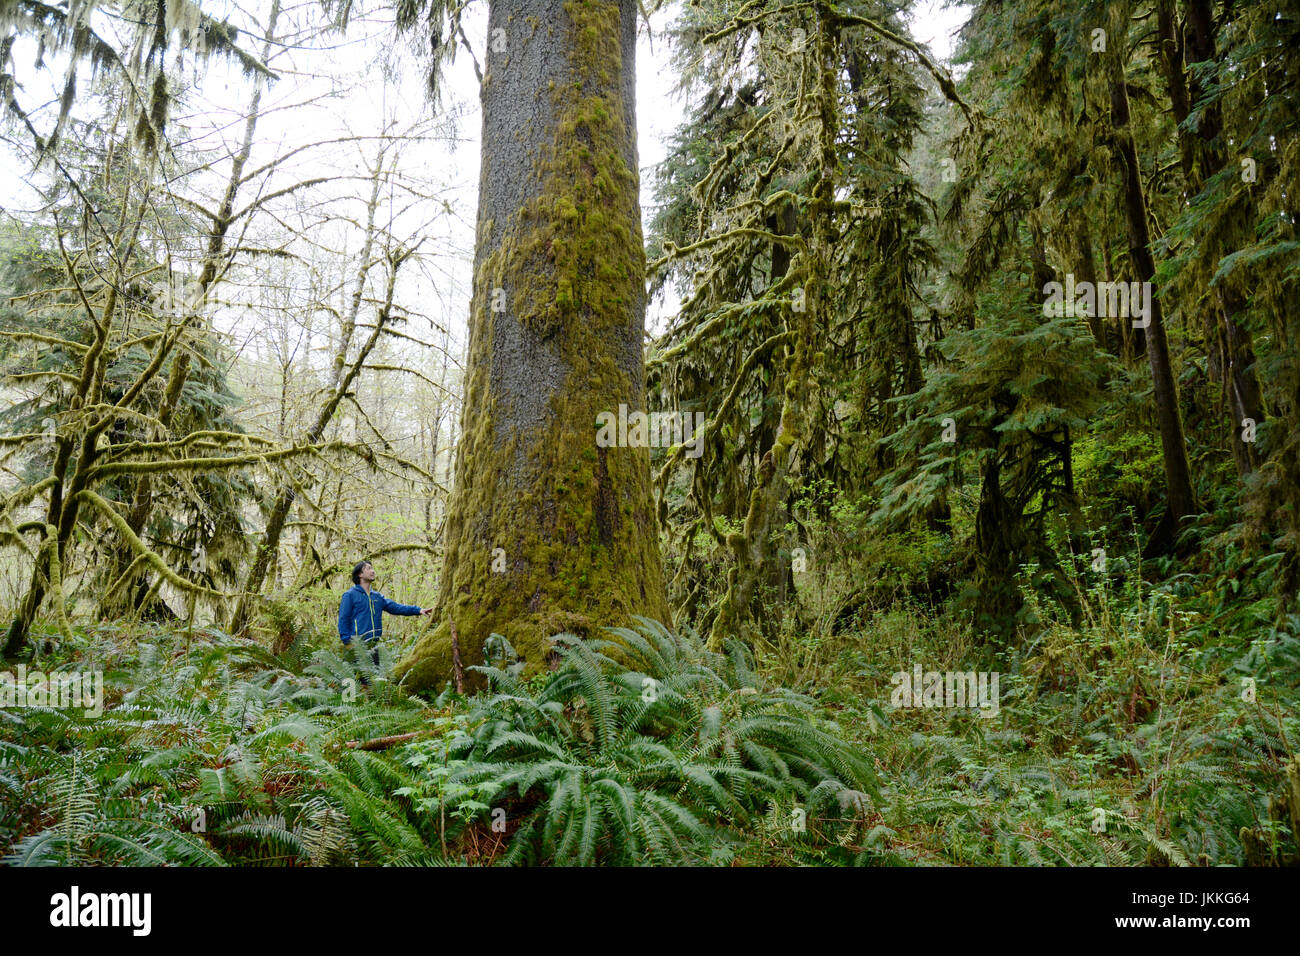 A Canadian environmentalist standing beneath a giant, old growth Sitka spruce tree in the rainforest near Port Renfrew, - Stock Image